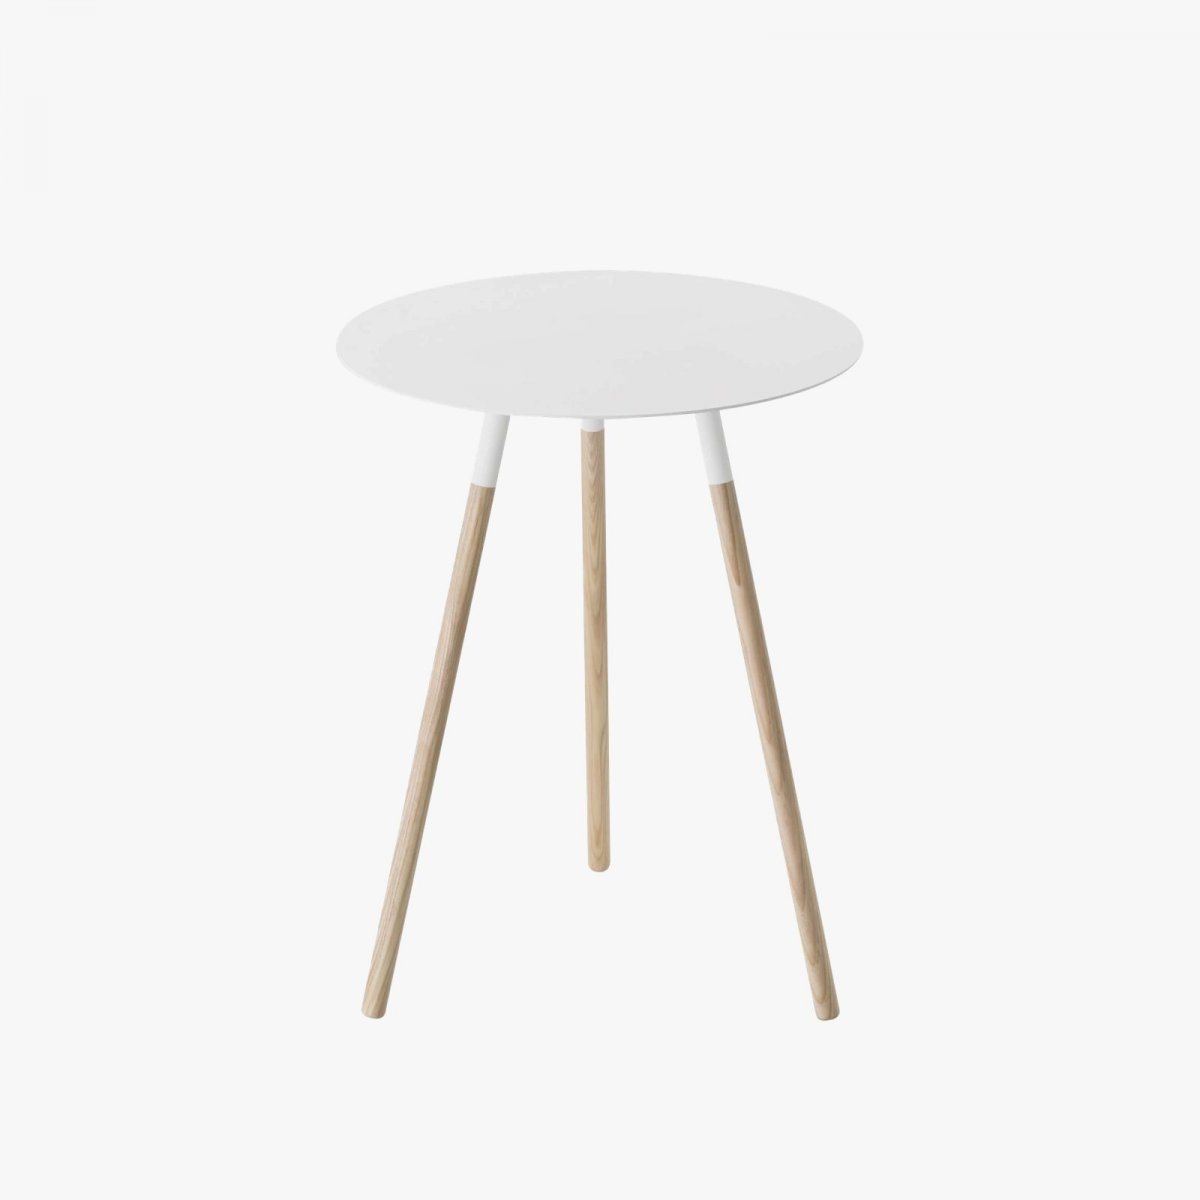 Plain Side Table, white.